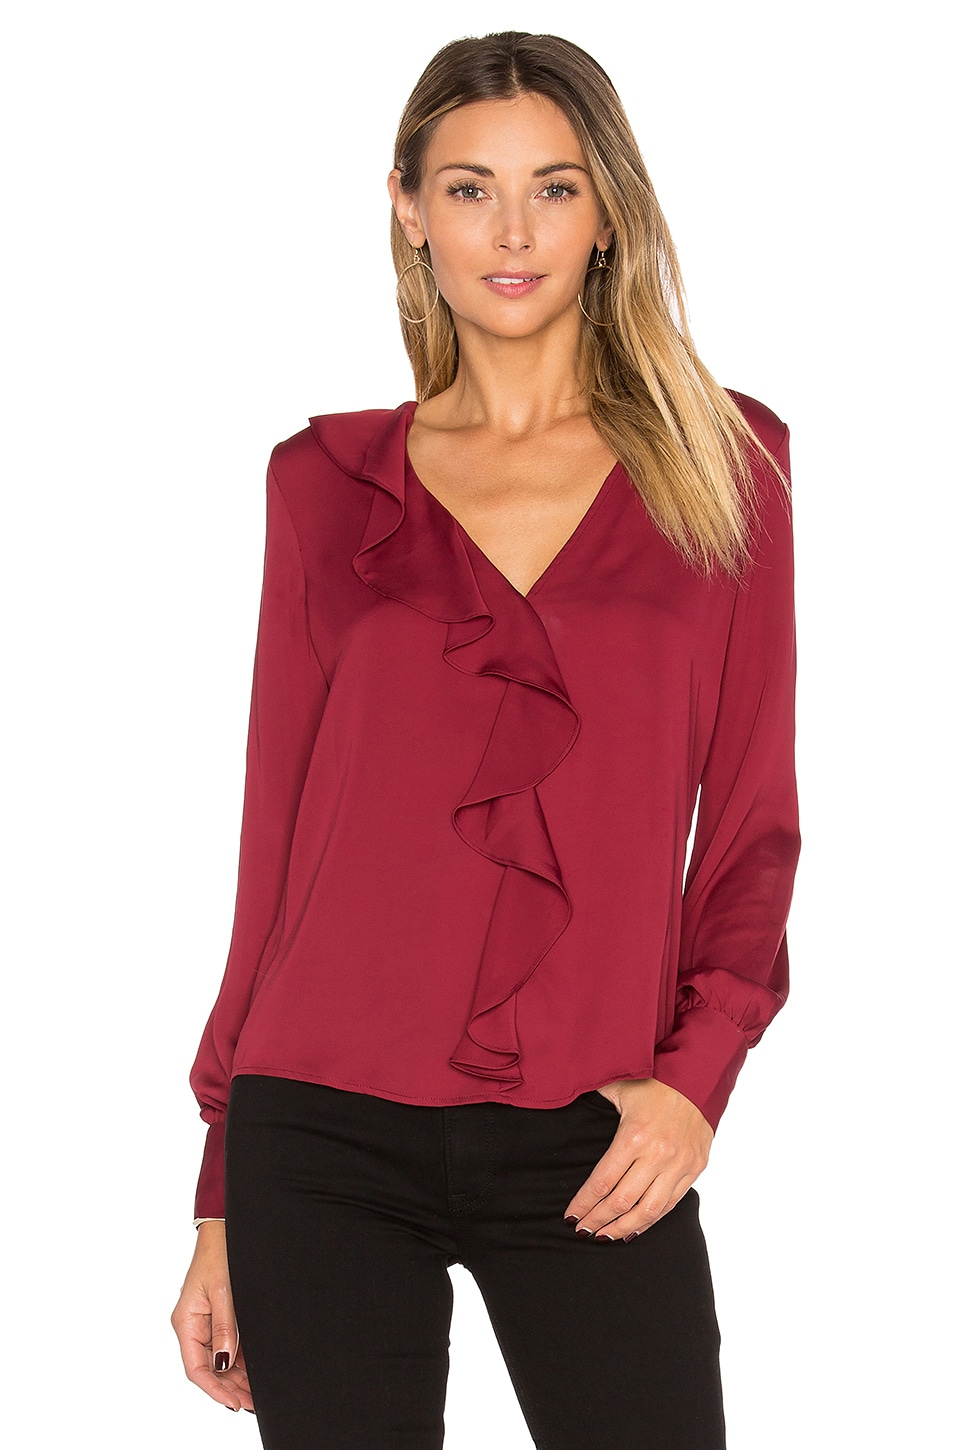 The Ruffle Blouse by L'Academie